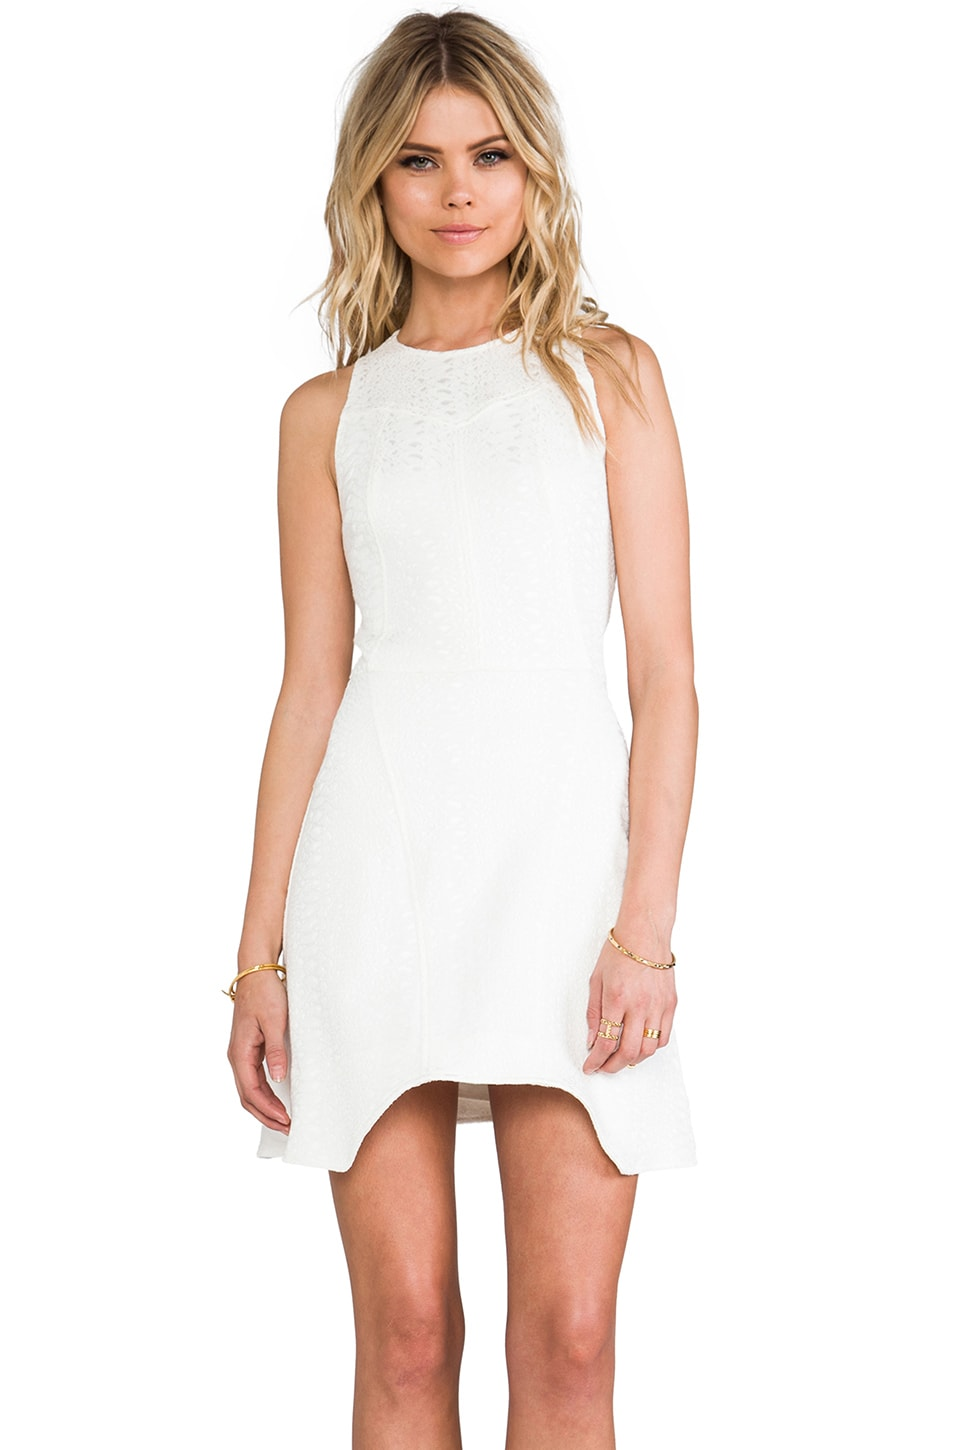 Alexis Dimitri Dress in White Python